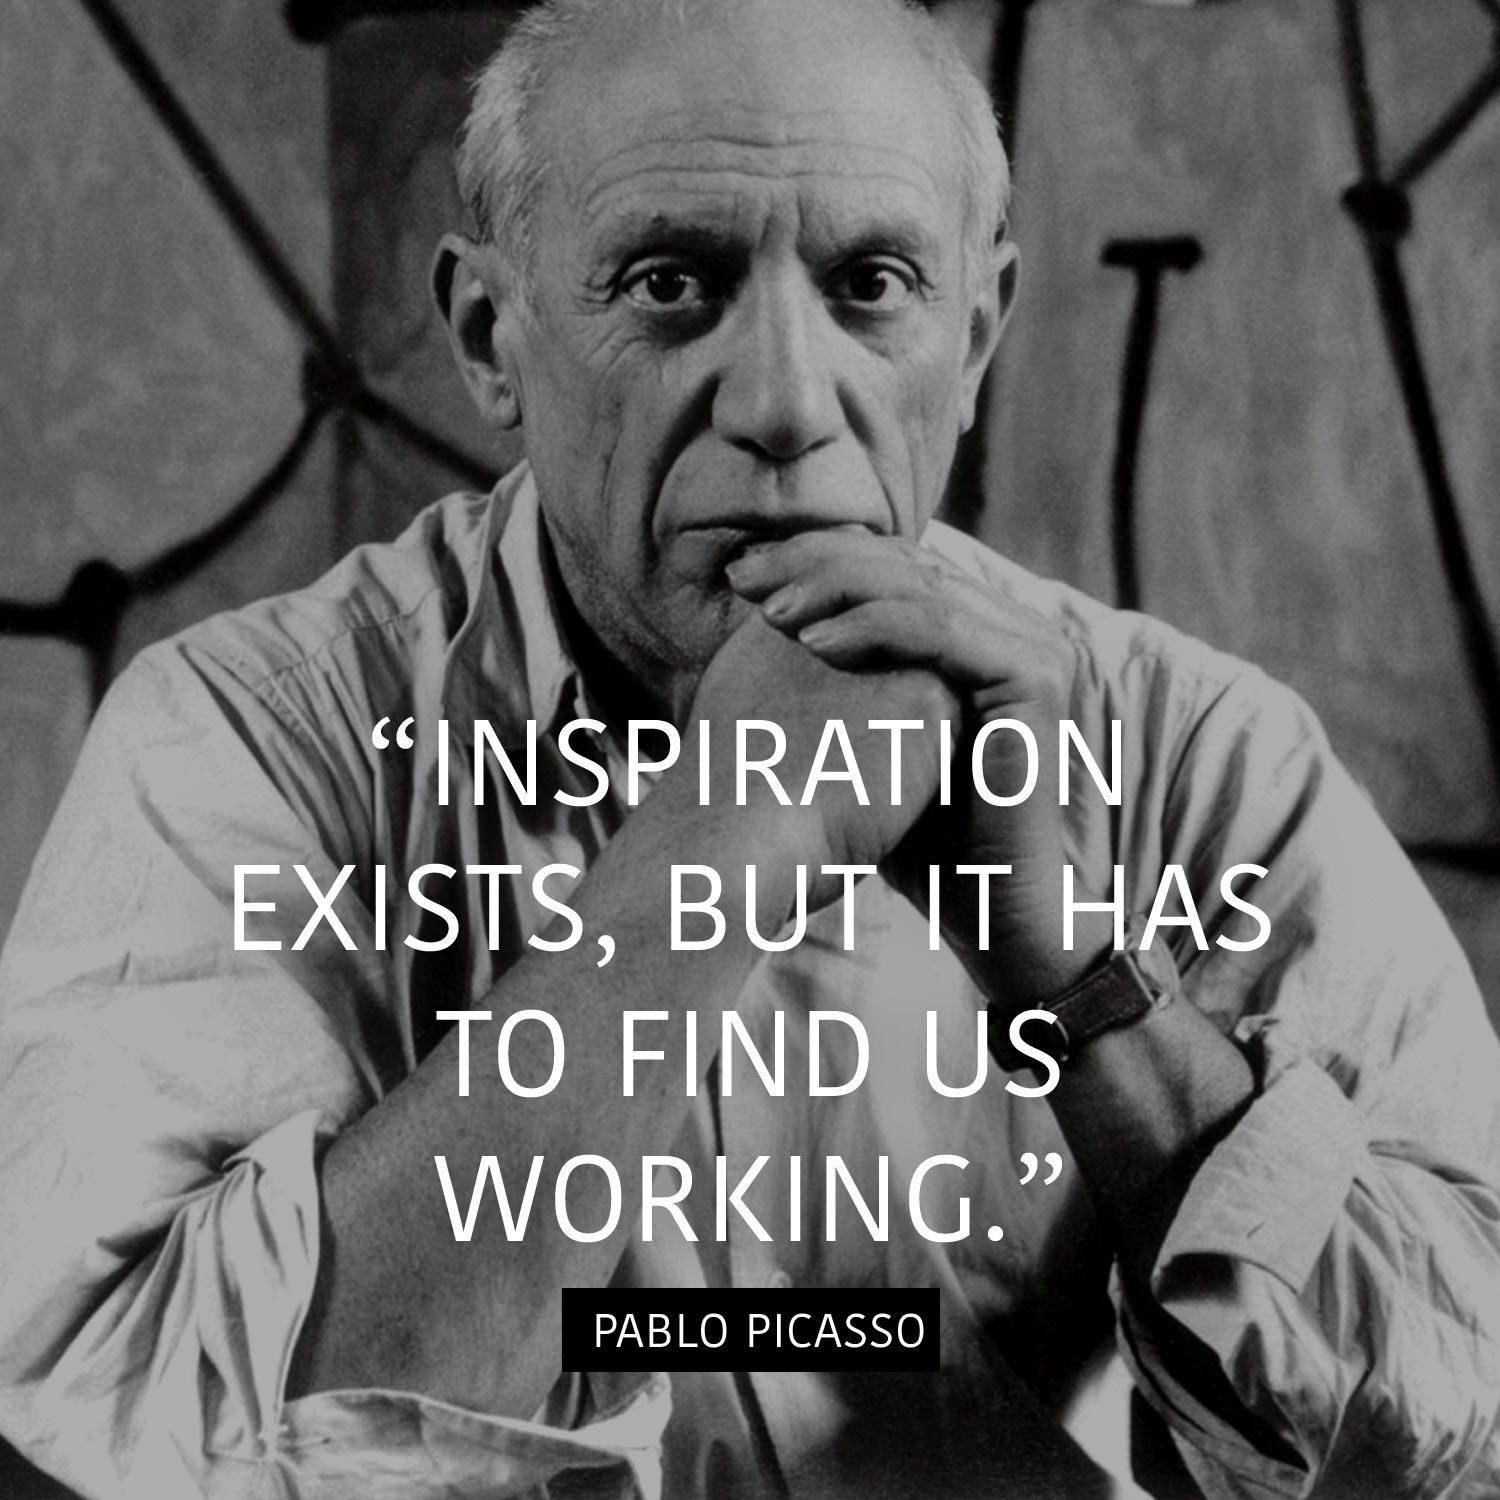 Inspiration exists, but it has to find us working. - Pablo Picasso